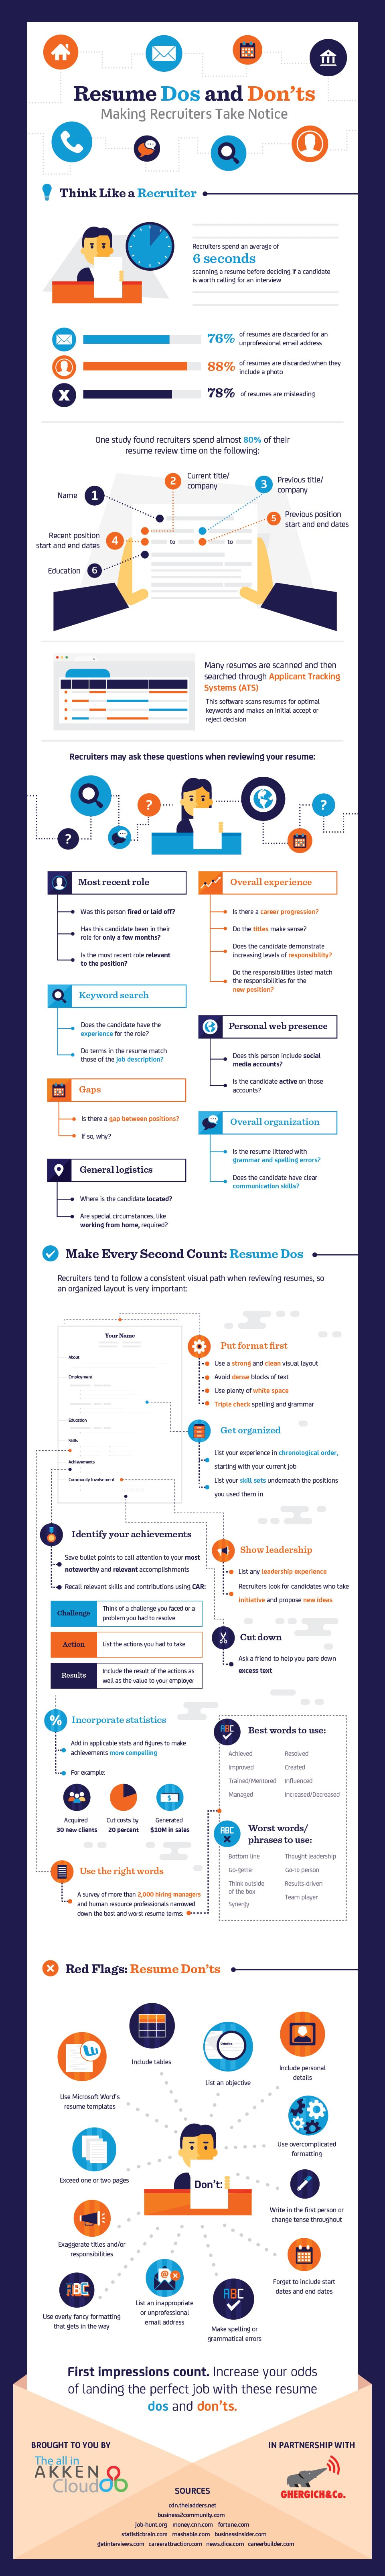 resume-dos-donts-infographic